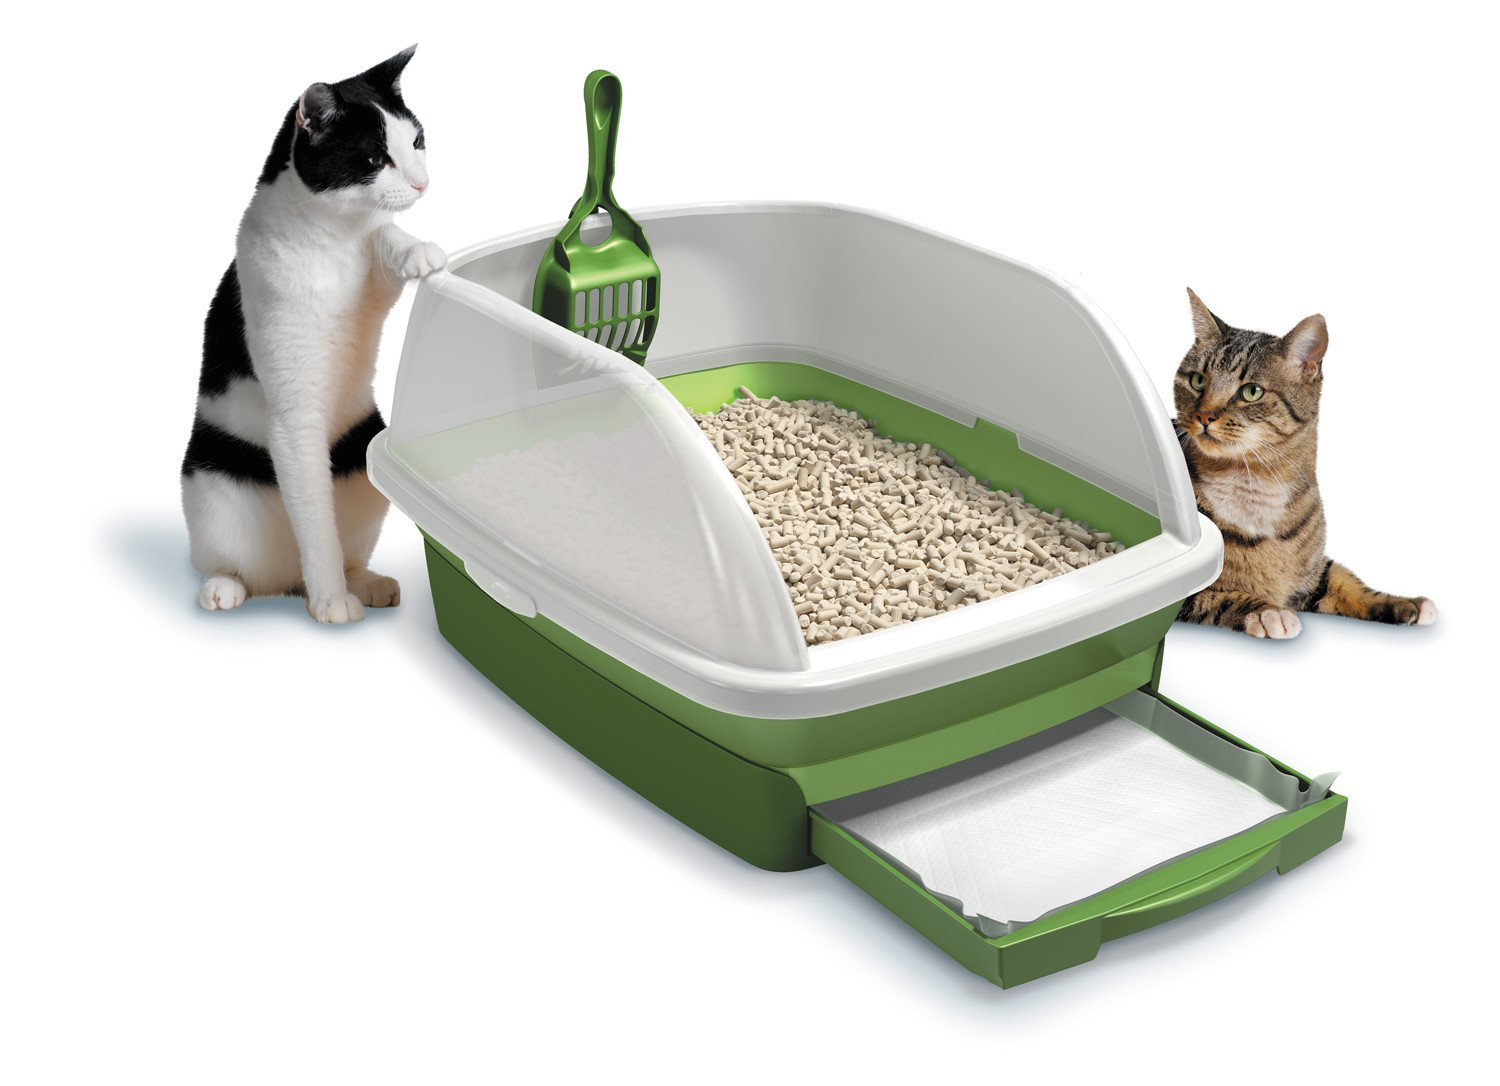 New Litter Box Kit System Tidy Cats Breeze Odor Control